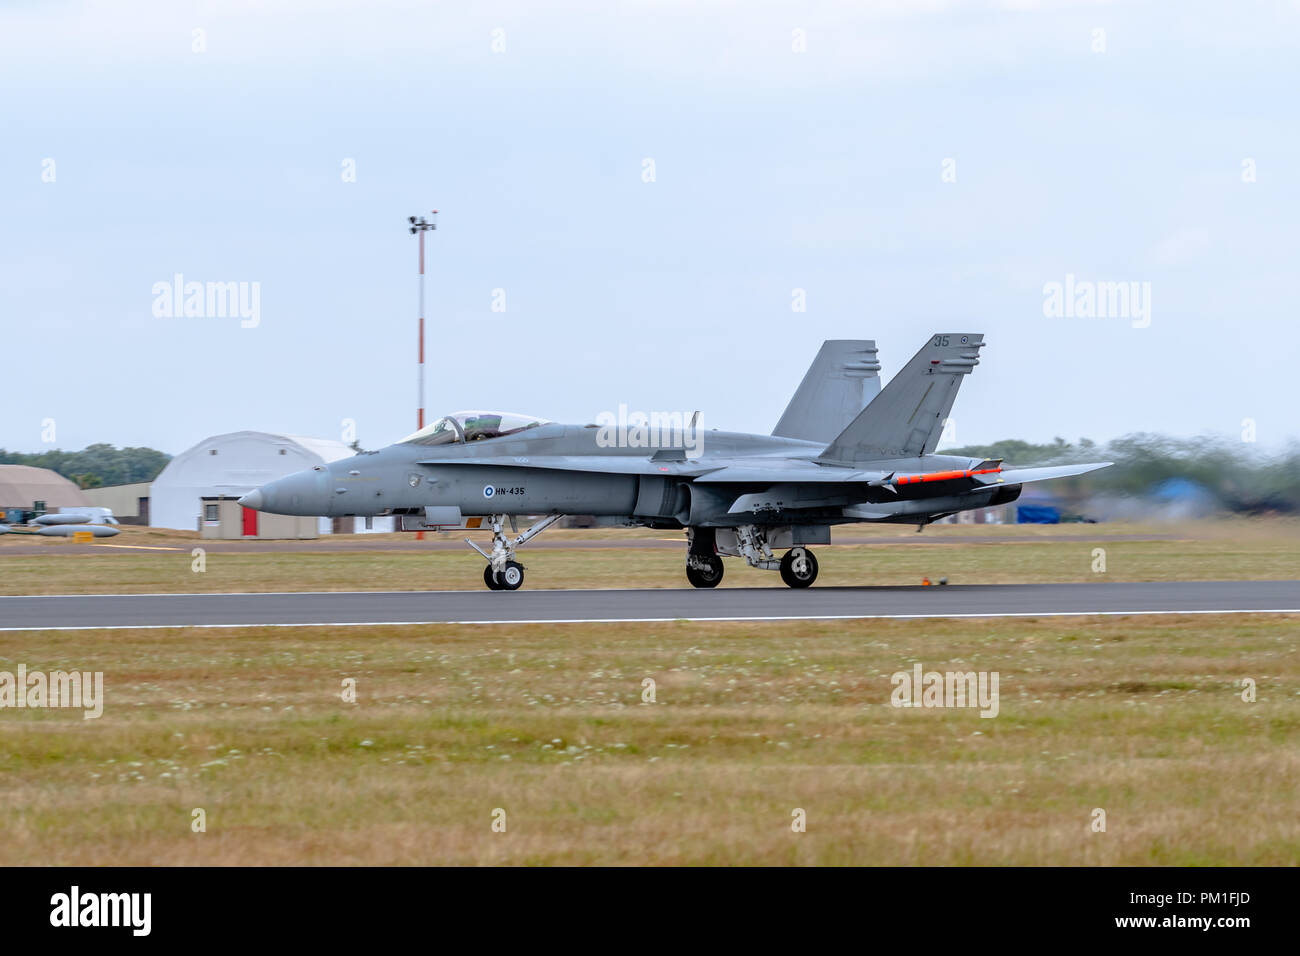 FAIRFORD, UK, JULY 13 2018: A photograph documenting the Finnish Air Force displaying a McDonnell Douglas F-18C Hornet jet fighter and ground attack a - Stock Image